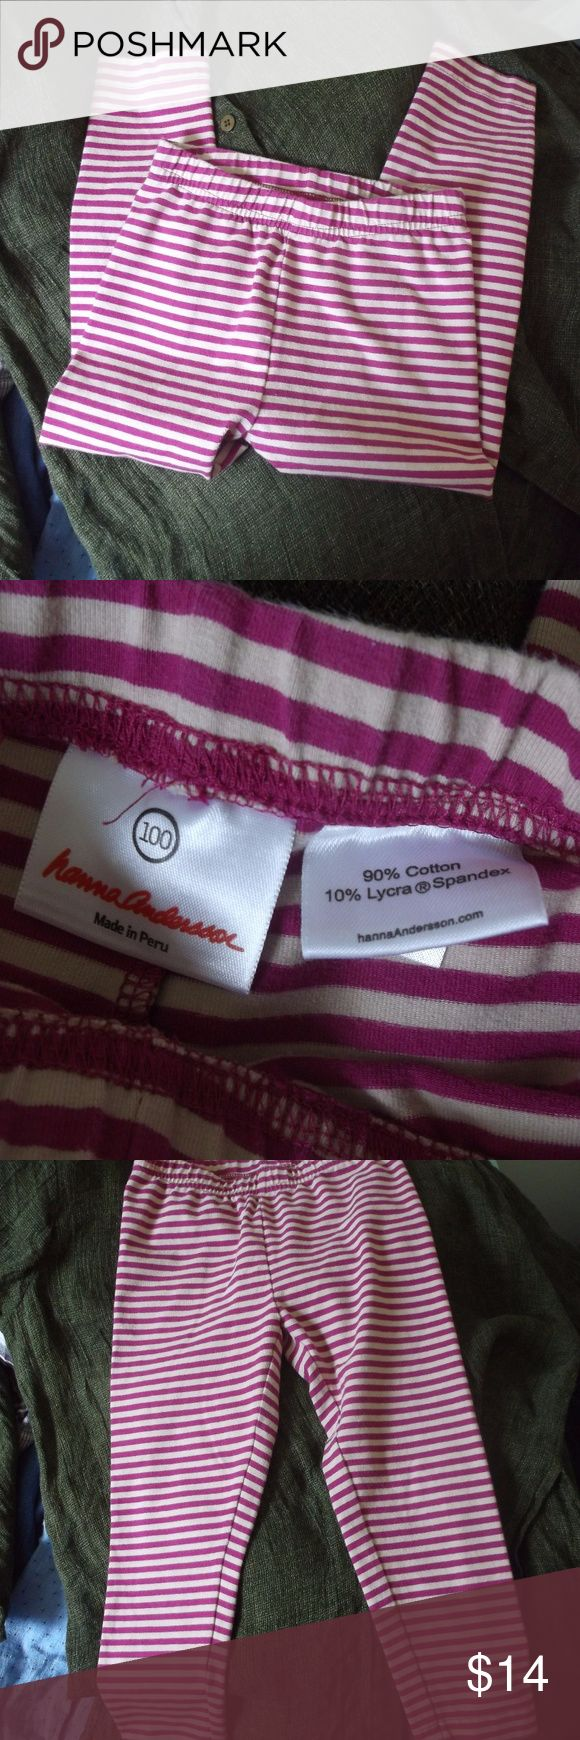 Hanna Andersson Purple Stripe Legging Pant 100 This is a pair of girls leggings pants by Hanna Andersson in a size 100 or 4T Great under skirts and dresses for cool weather! Cotton lycra spandex knit fabric Pull on style Stripes of beige and plum purple In excellent used condition Hanna Andersson Bottoms Casual